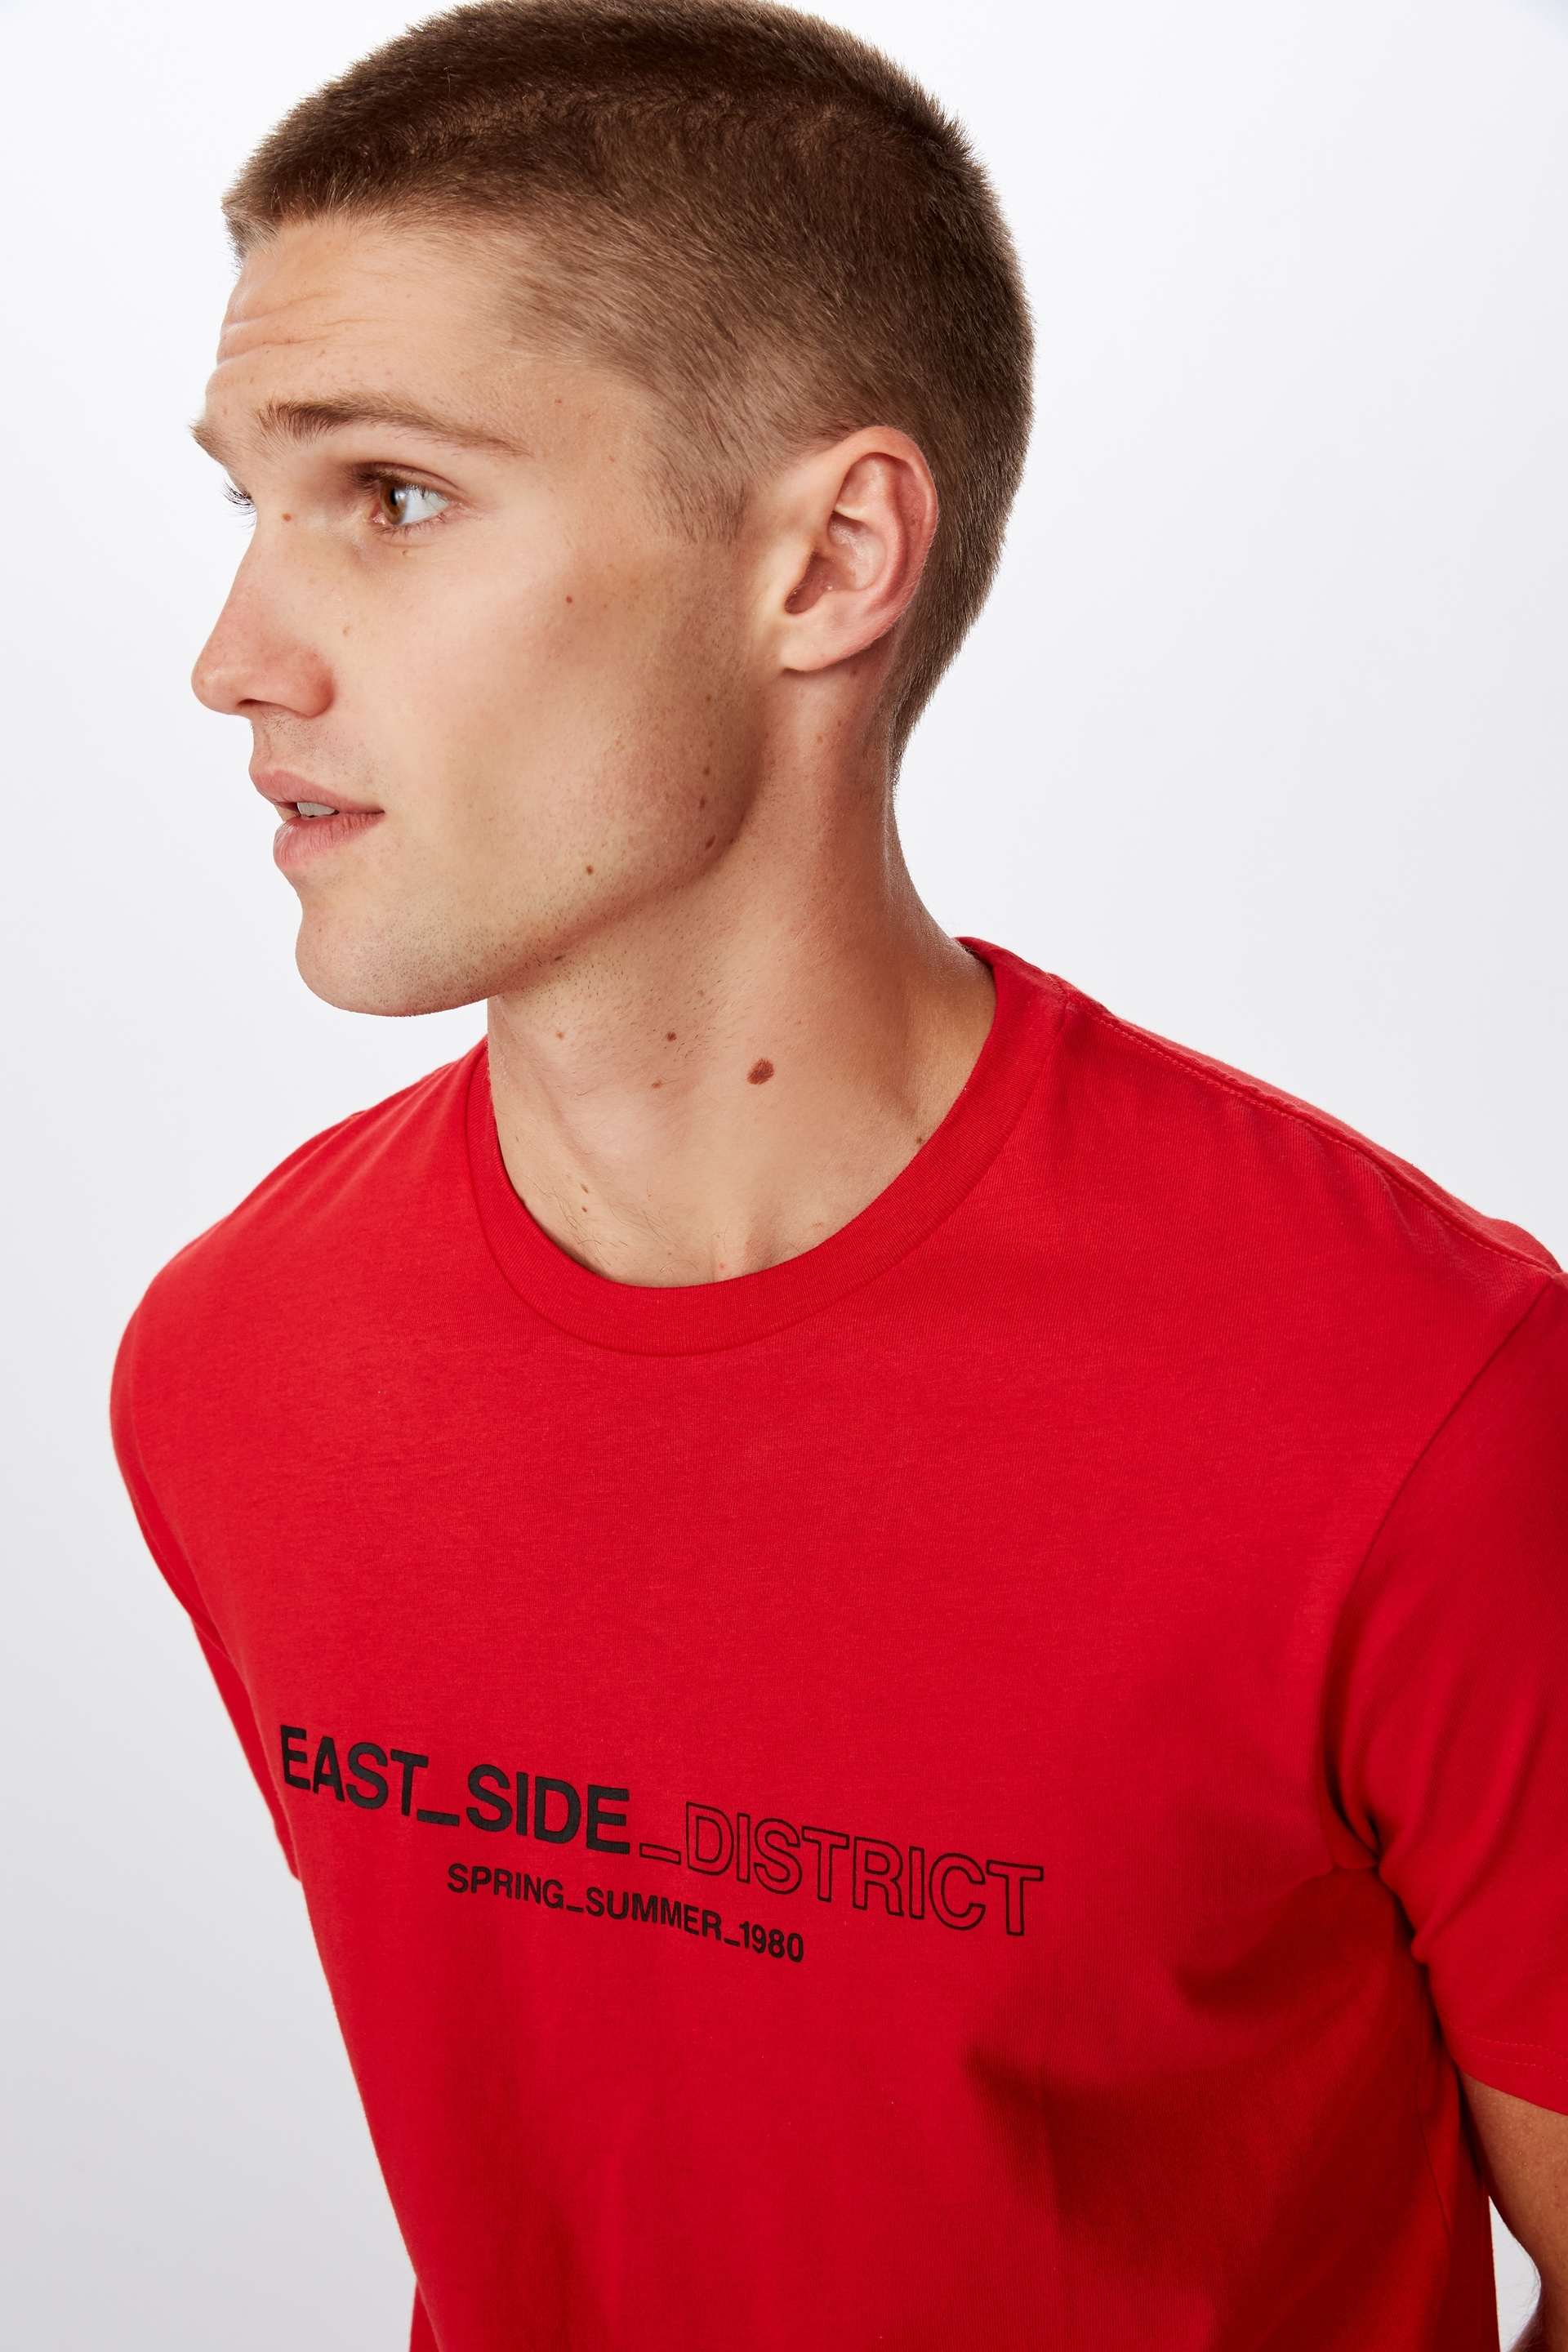 Cotton On Men - Tbar Tee Clearance - Strong red/east side district